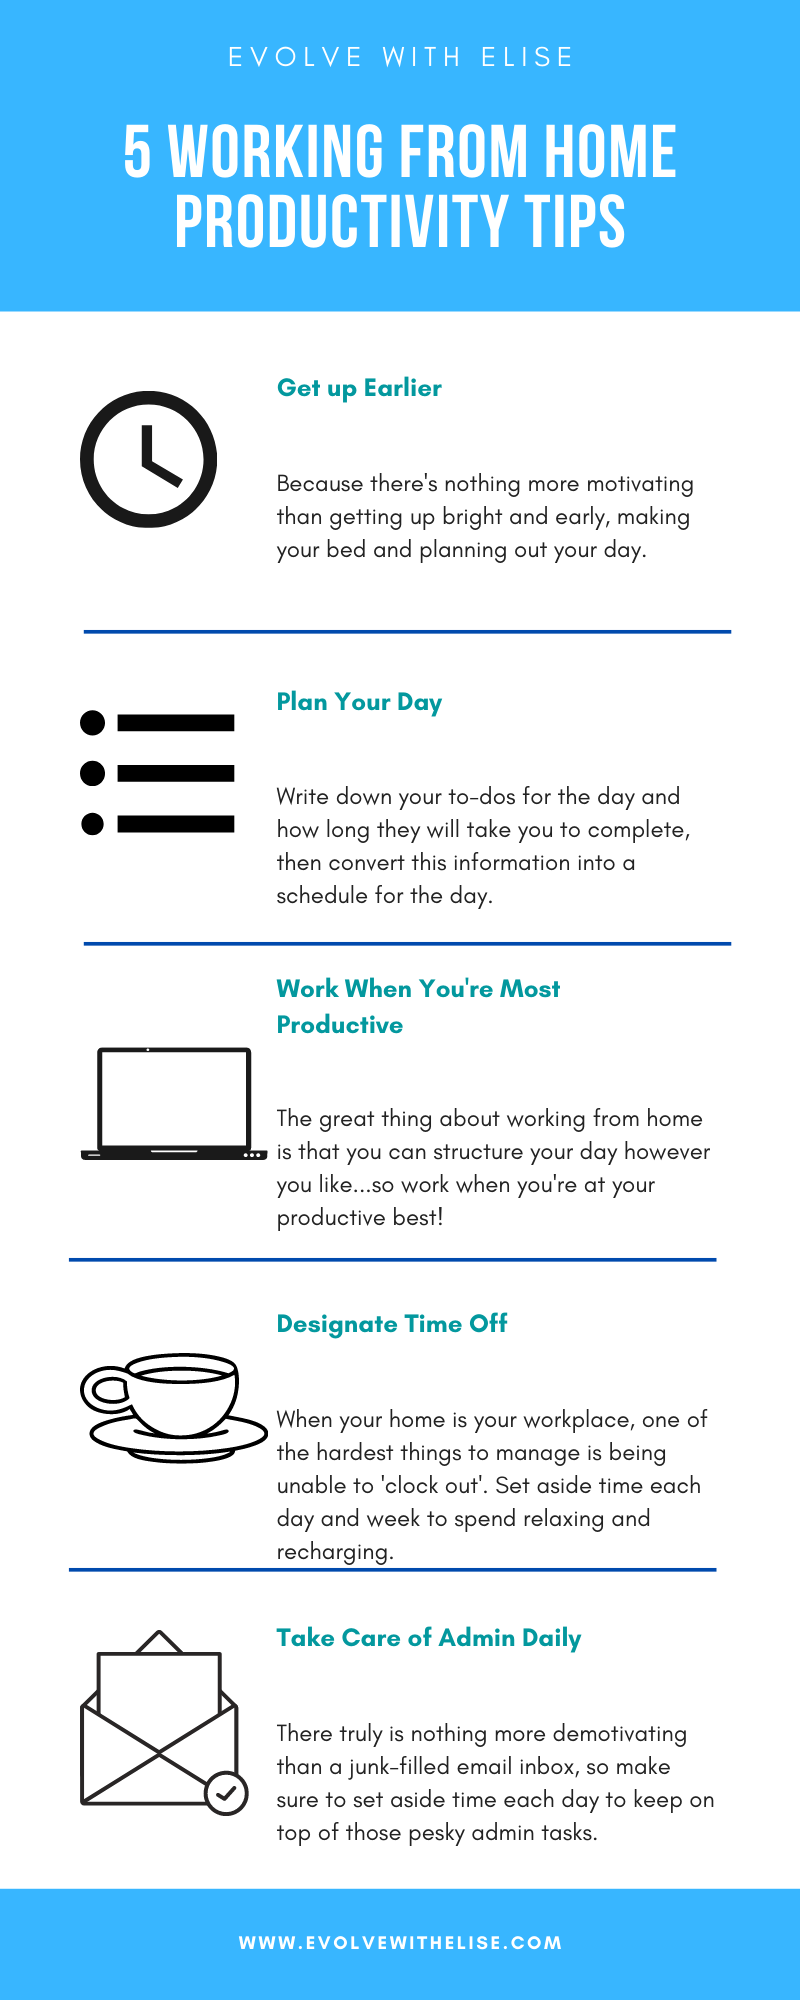 5 working from home productivity tips infographic